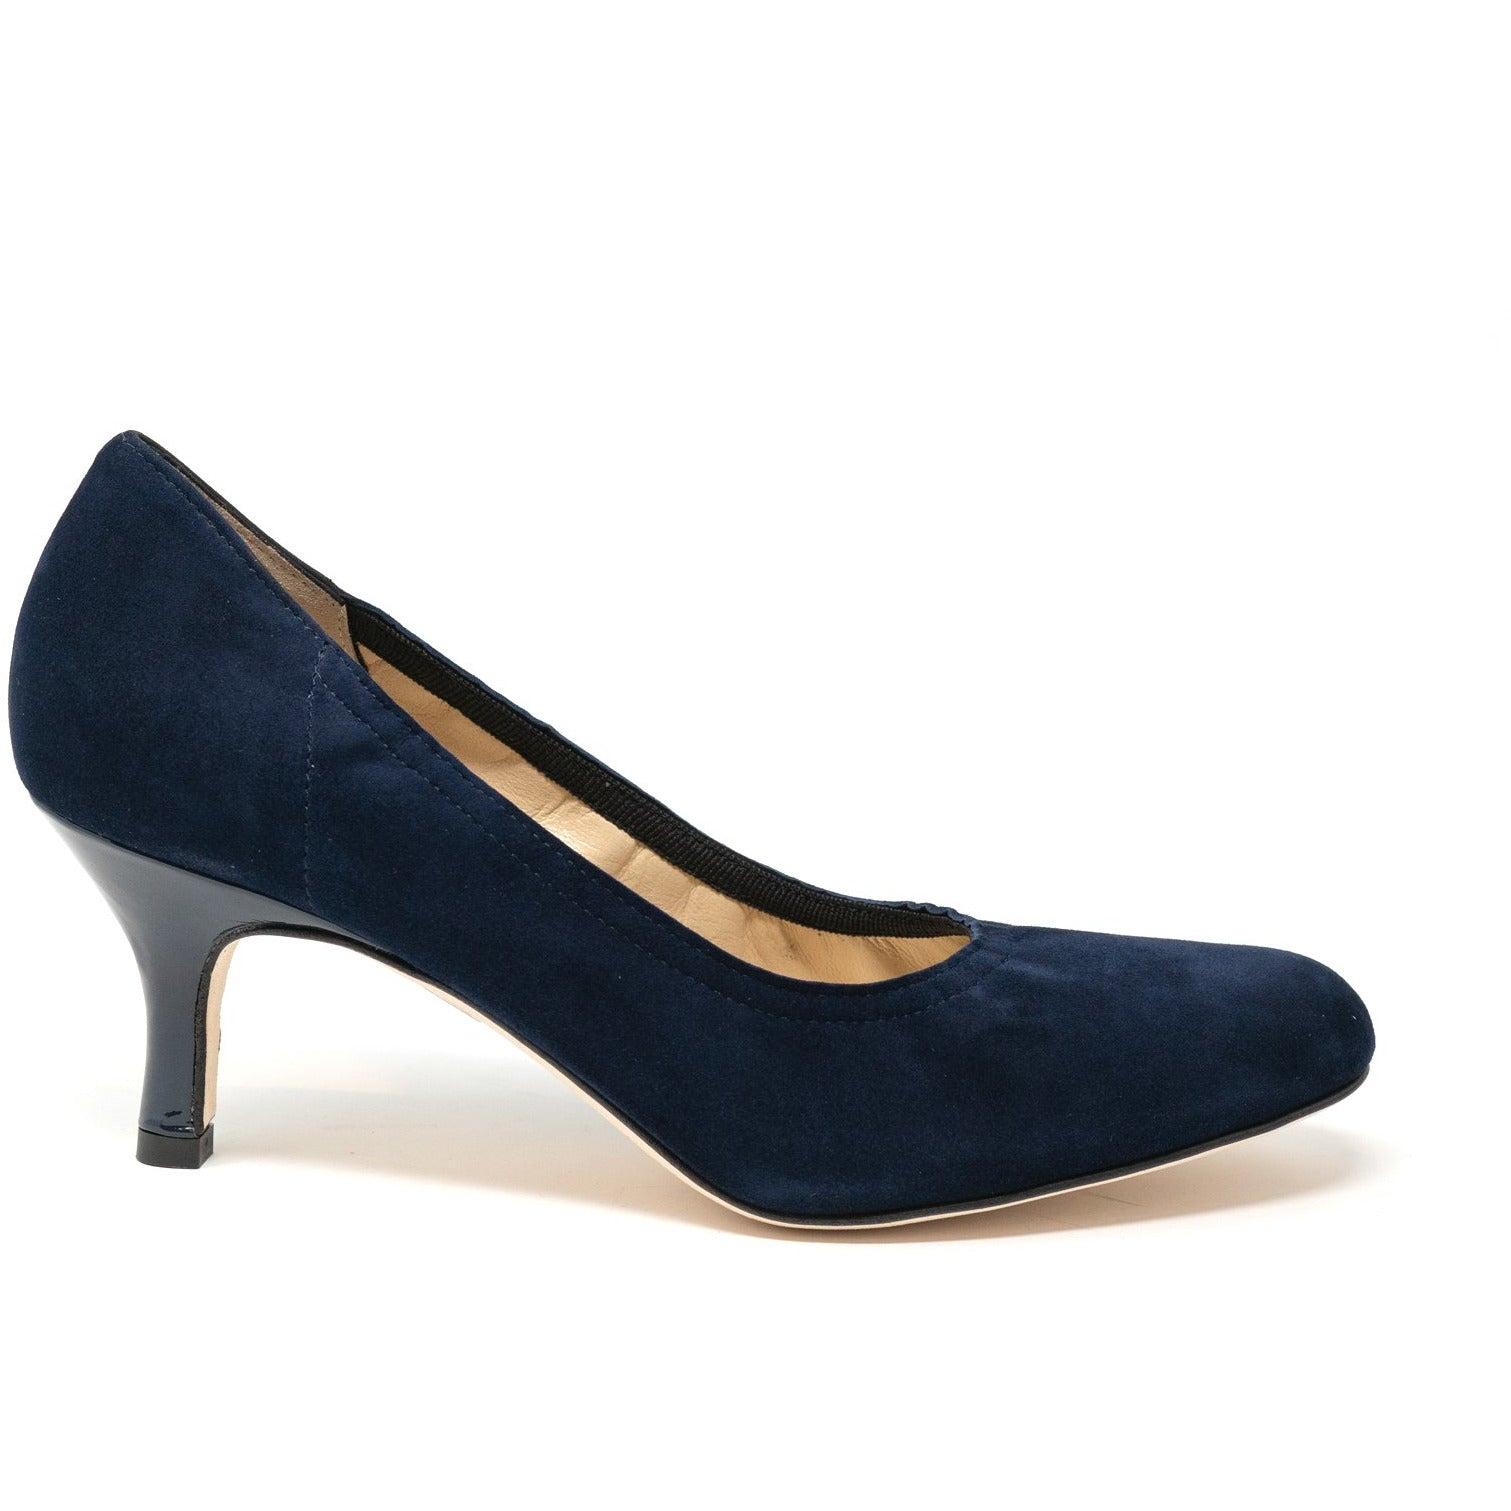 MIL461 55T Women Leather Pumps - Jennifer Tattanelli